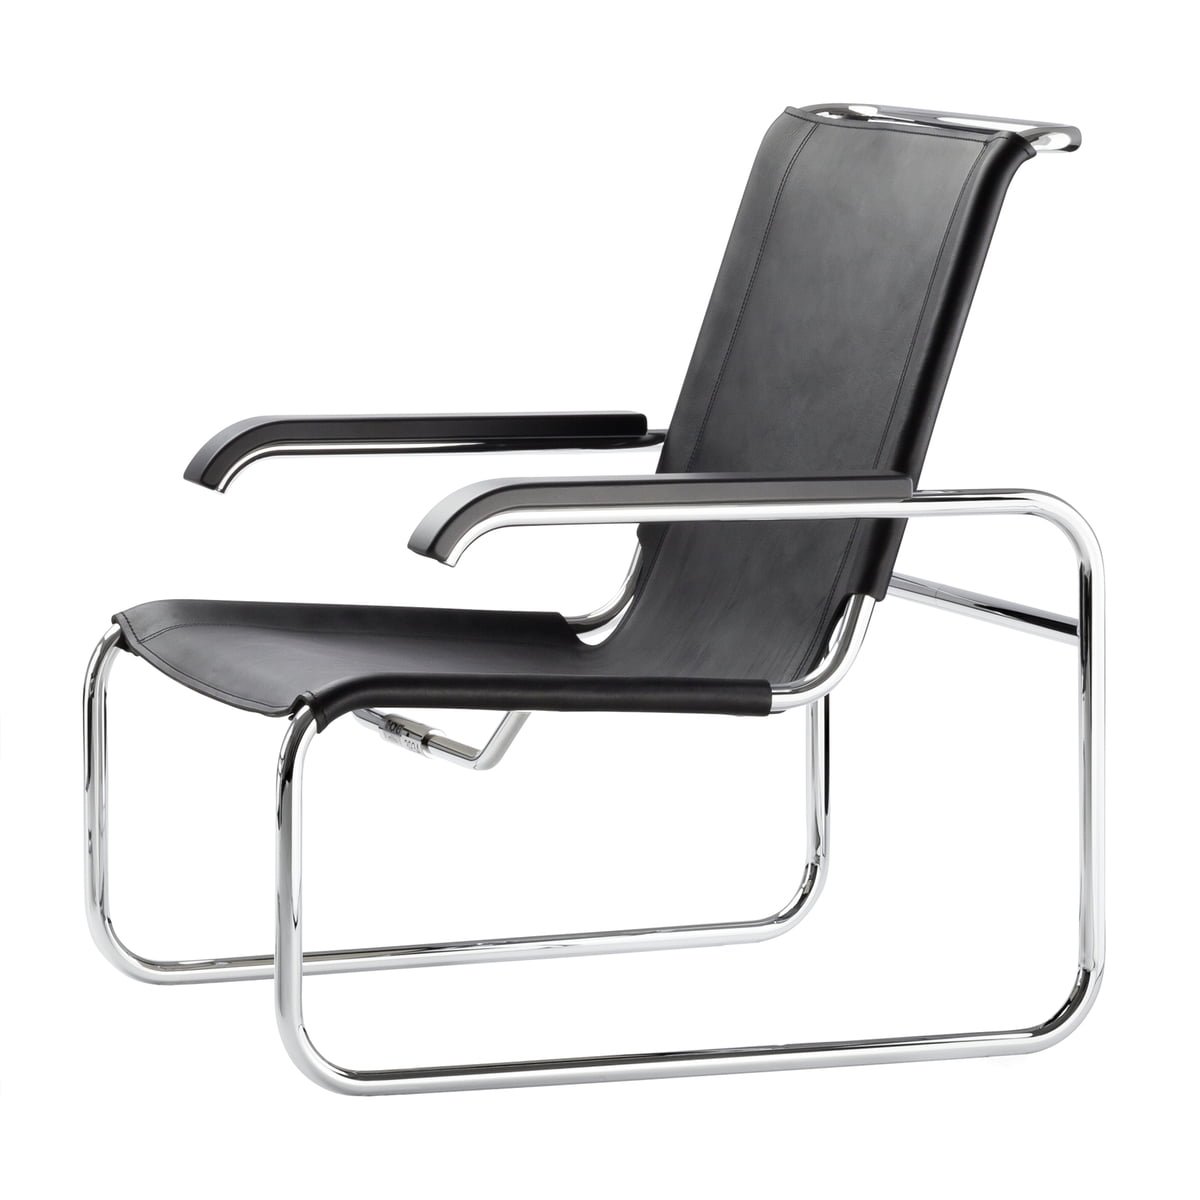 S 35 L Lounge Chair by Thonet